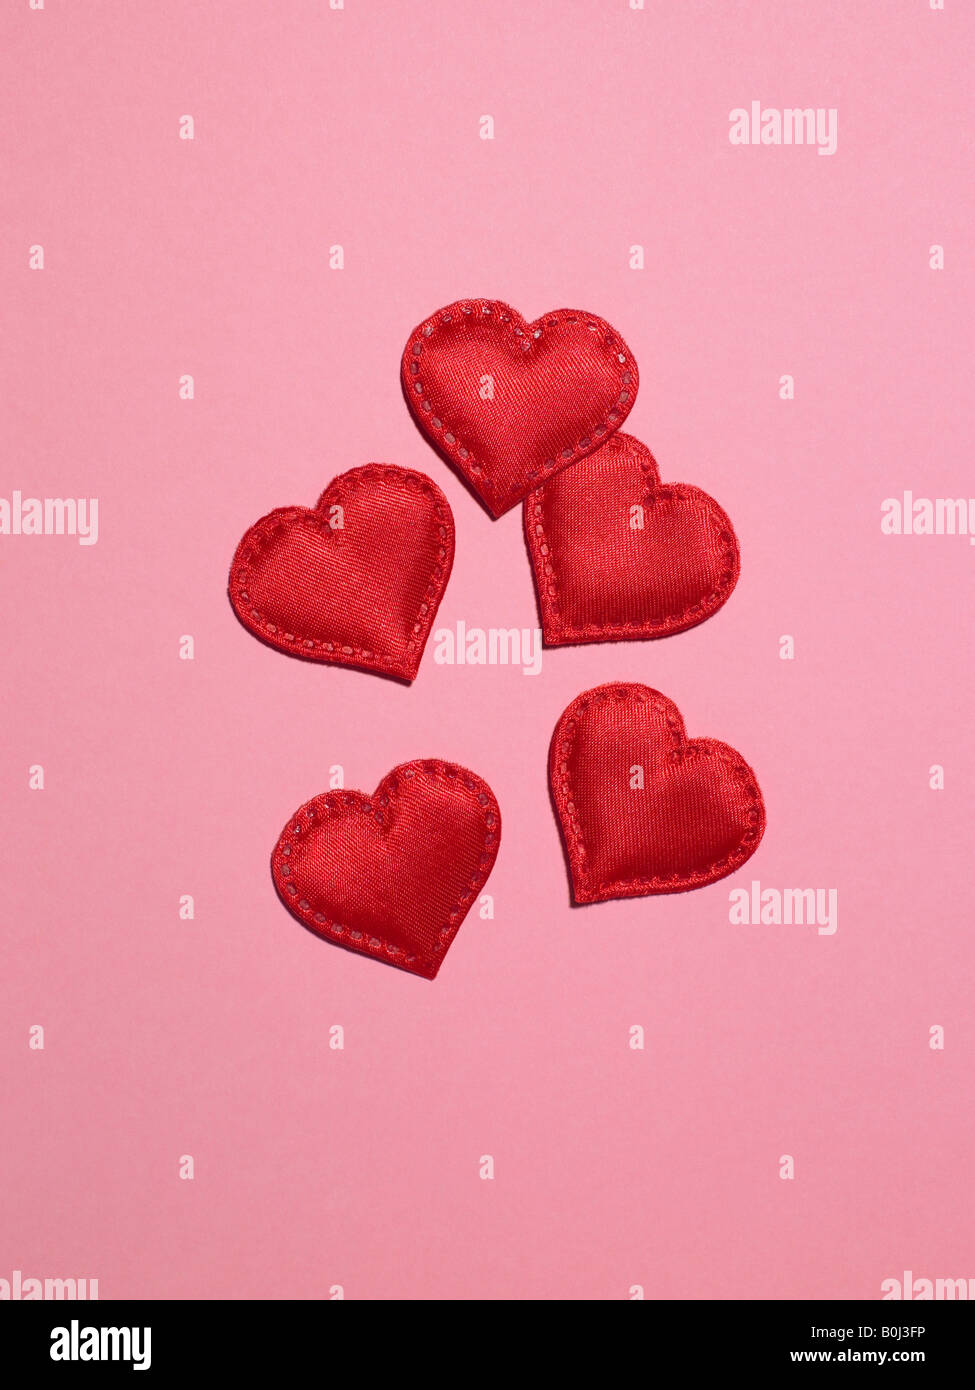 hearts on pink background - Stock Image